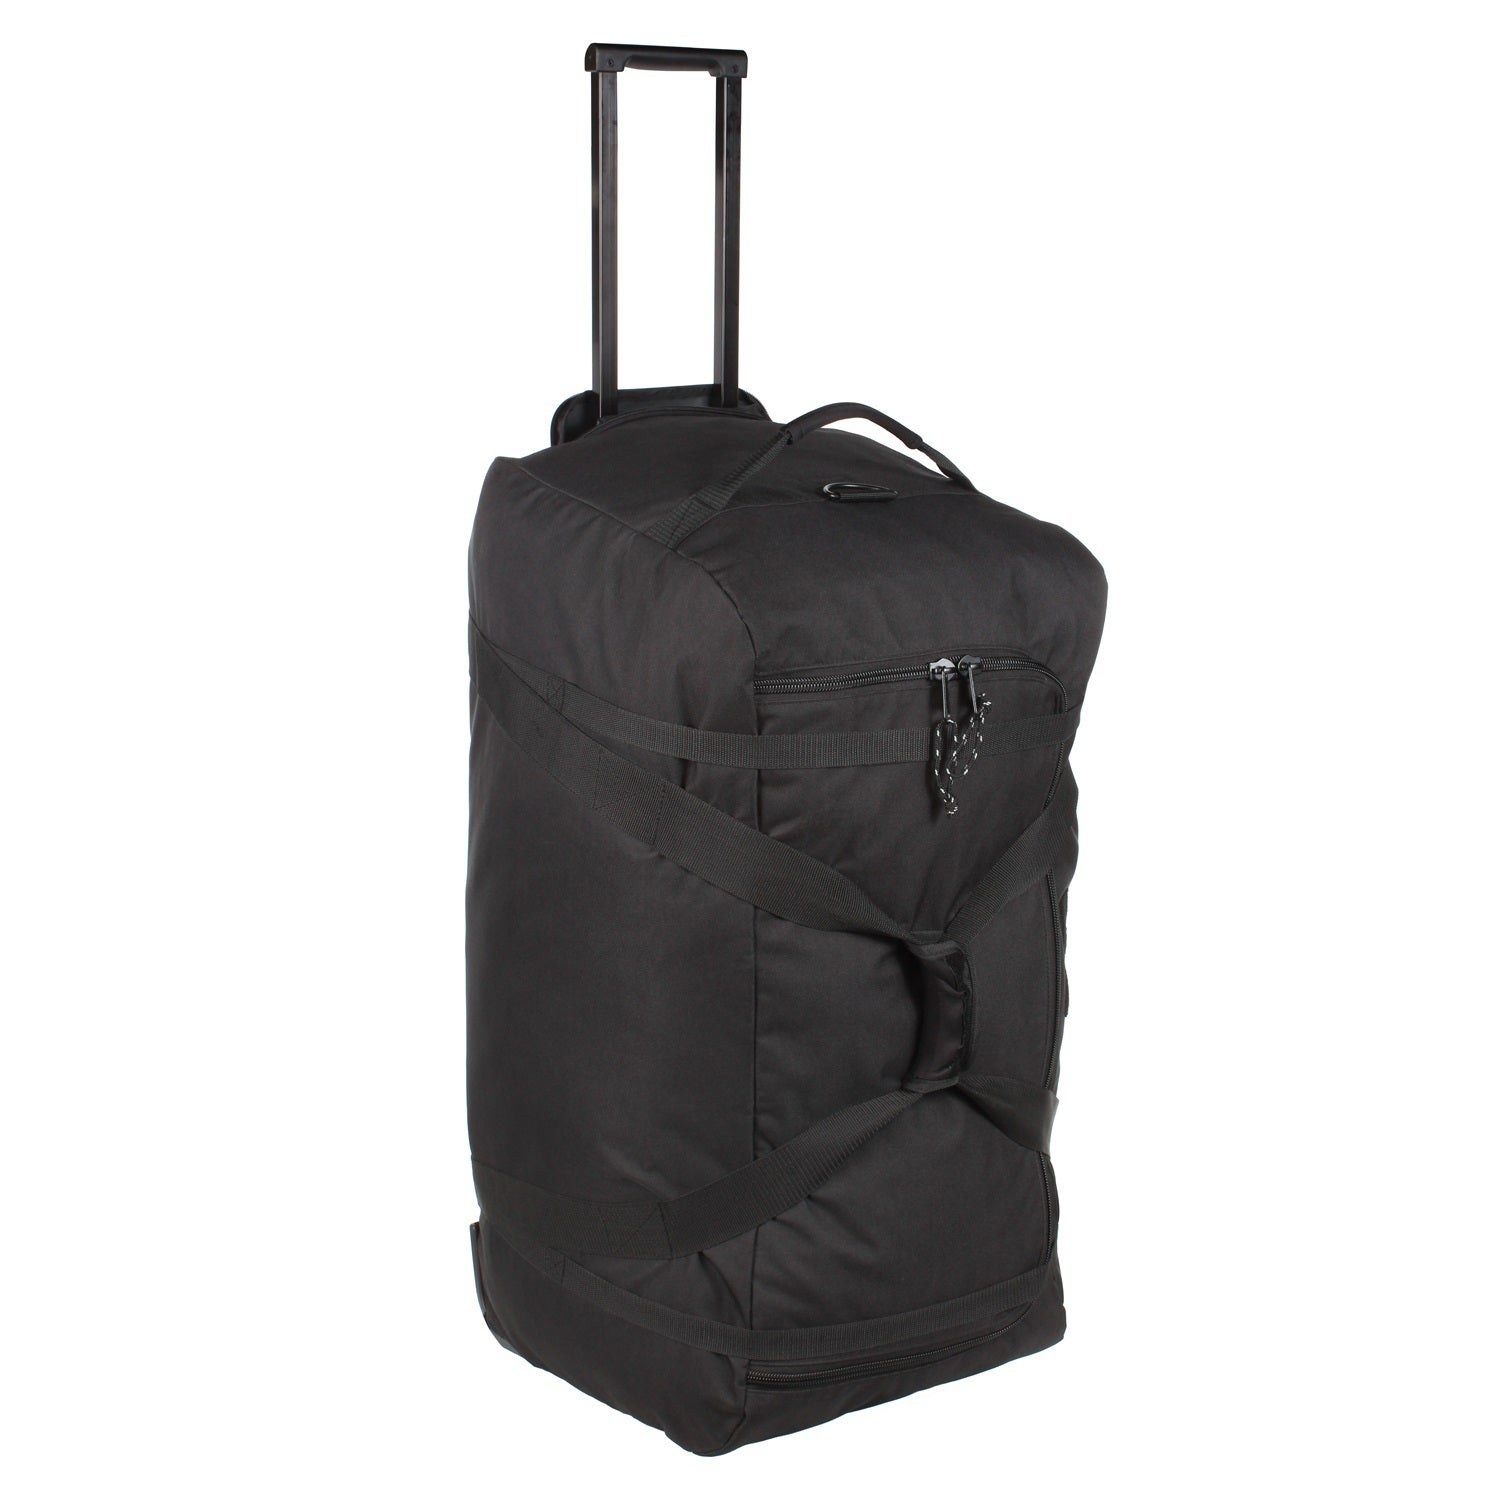 6d2dffbcd267 Shop Sandpiper Black Rolling Duffel Bag - Free Shipping Today - Overstock -  9495622